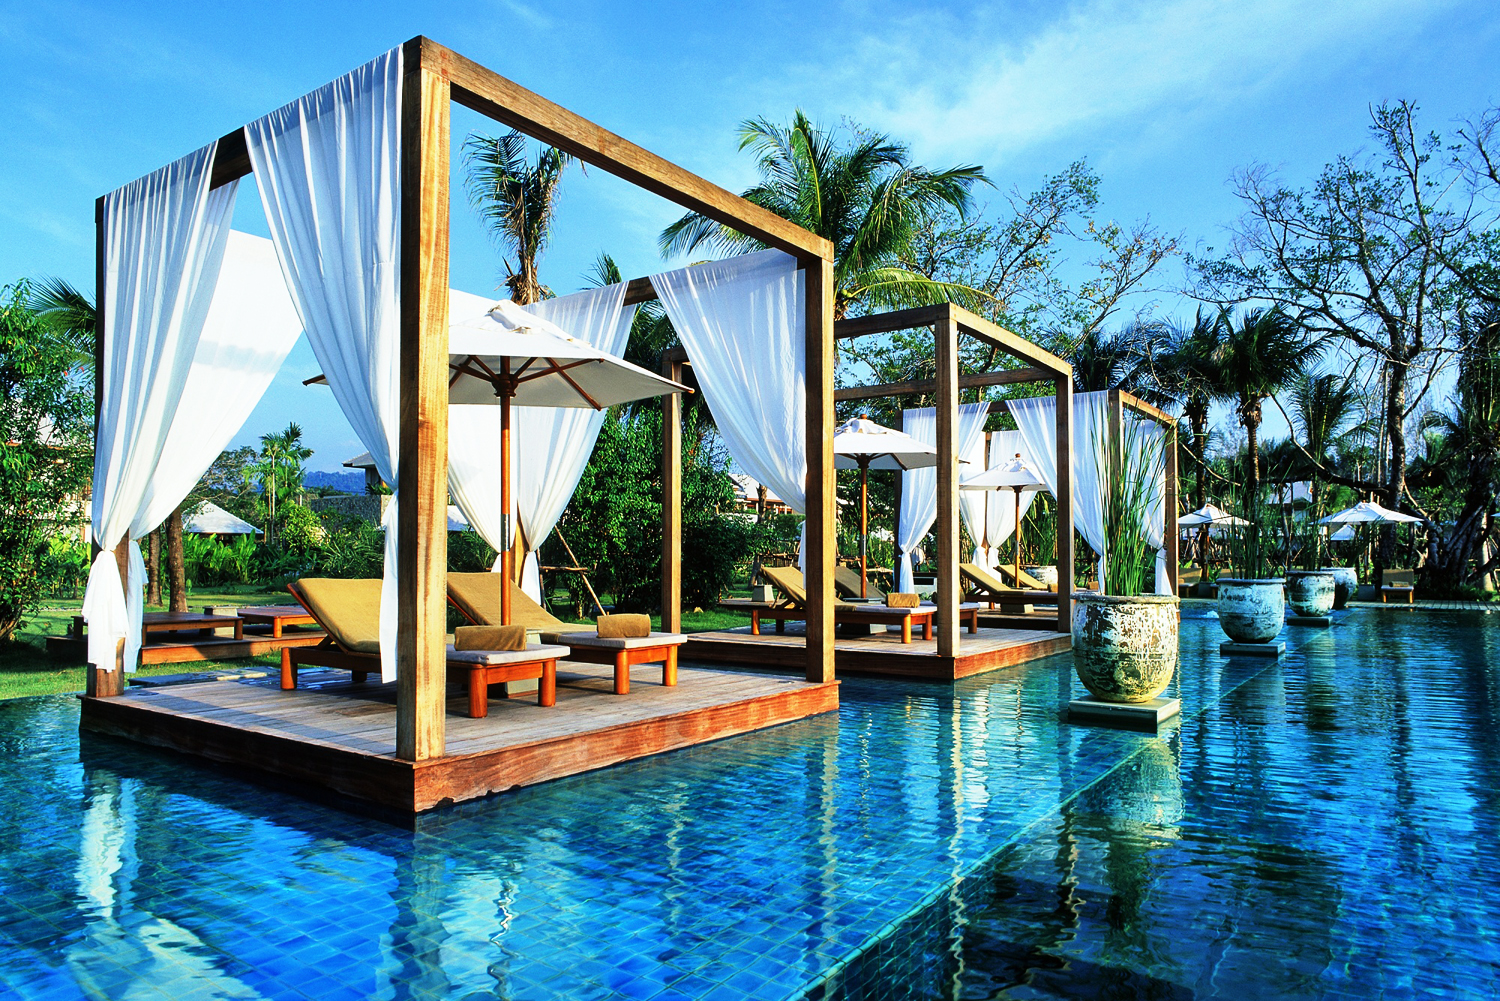 Poolside pavilions at The Sarojin resort in Khao Lak, Thailand.